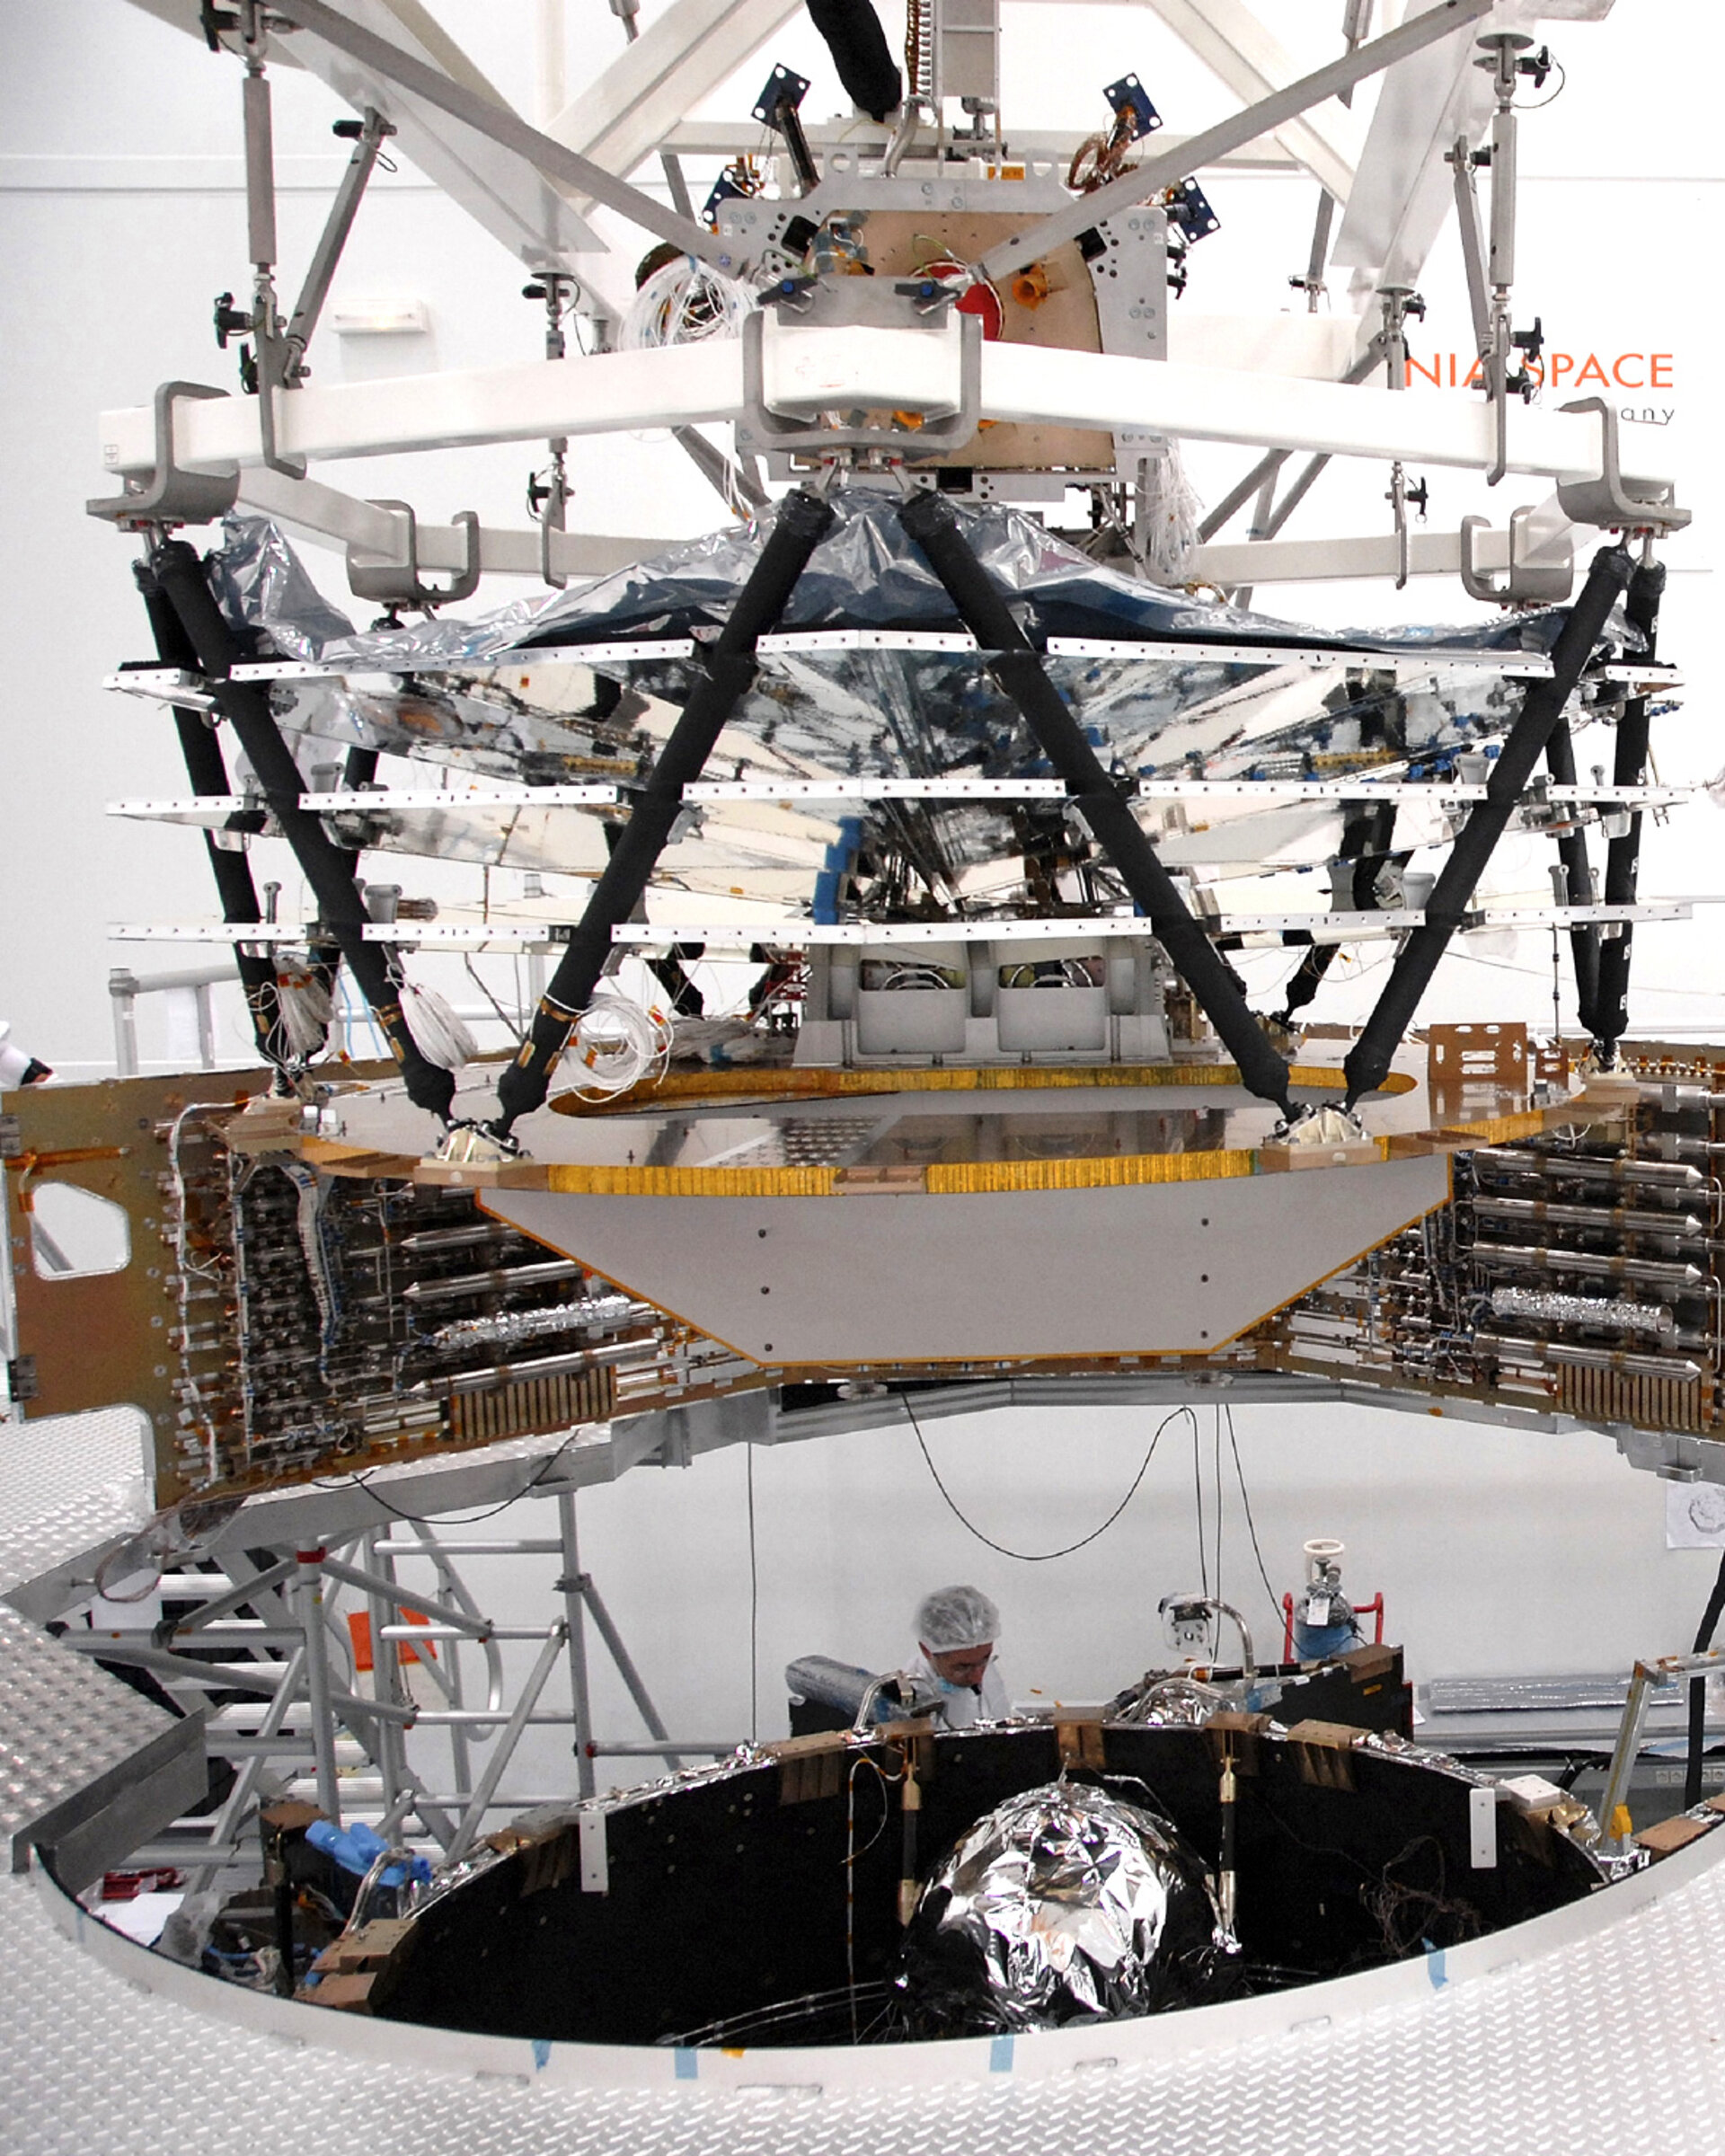 Mating of Planck's service and payload modules